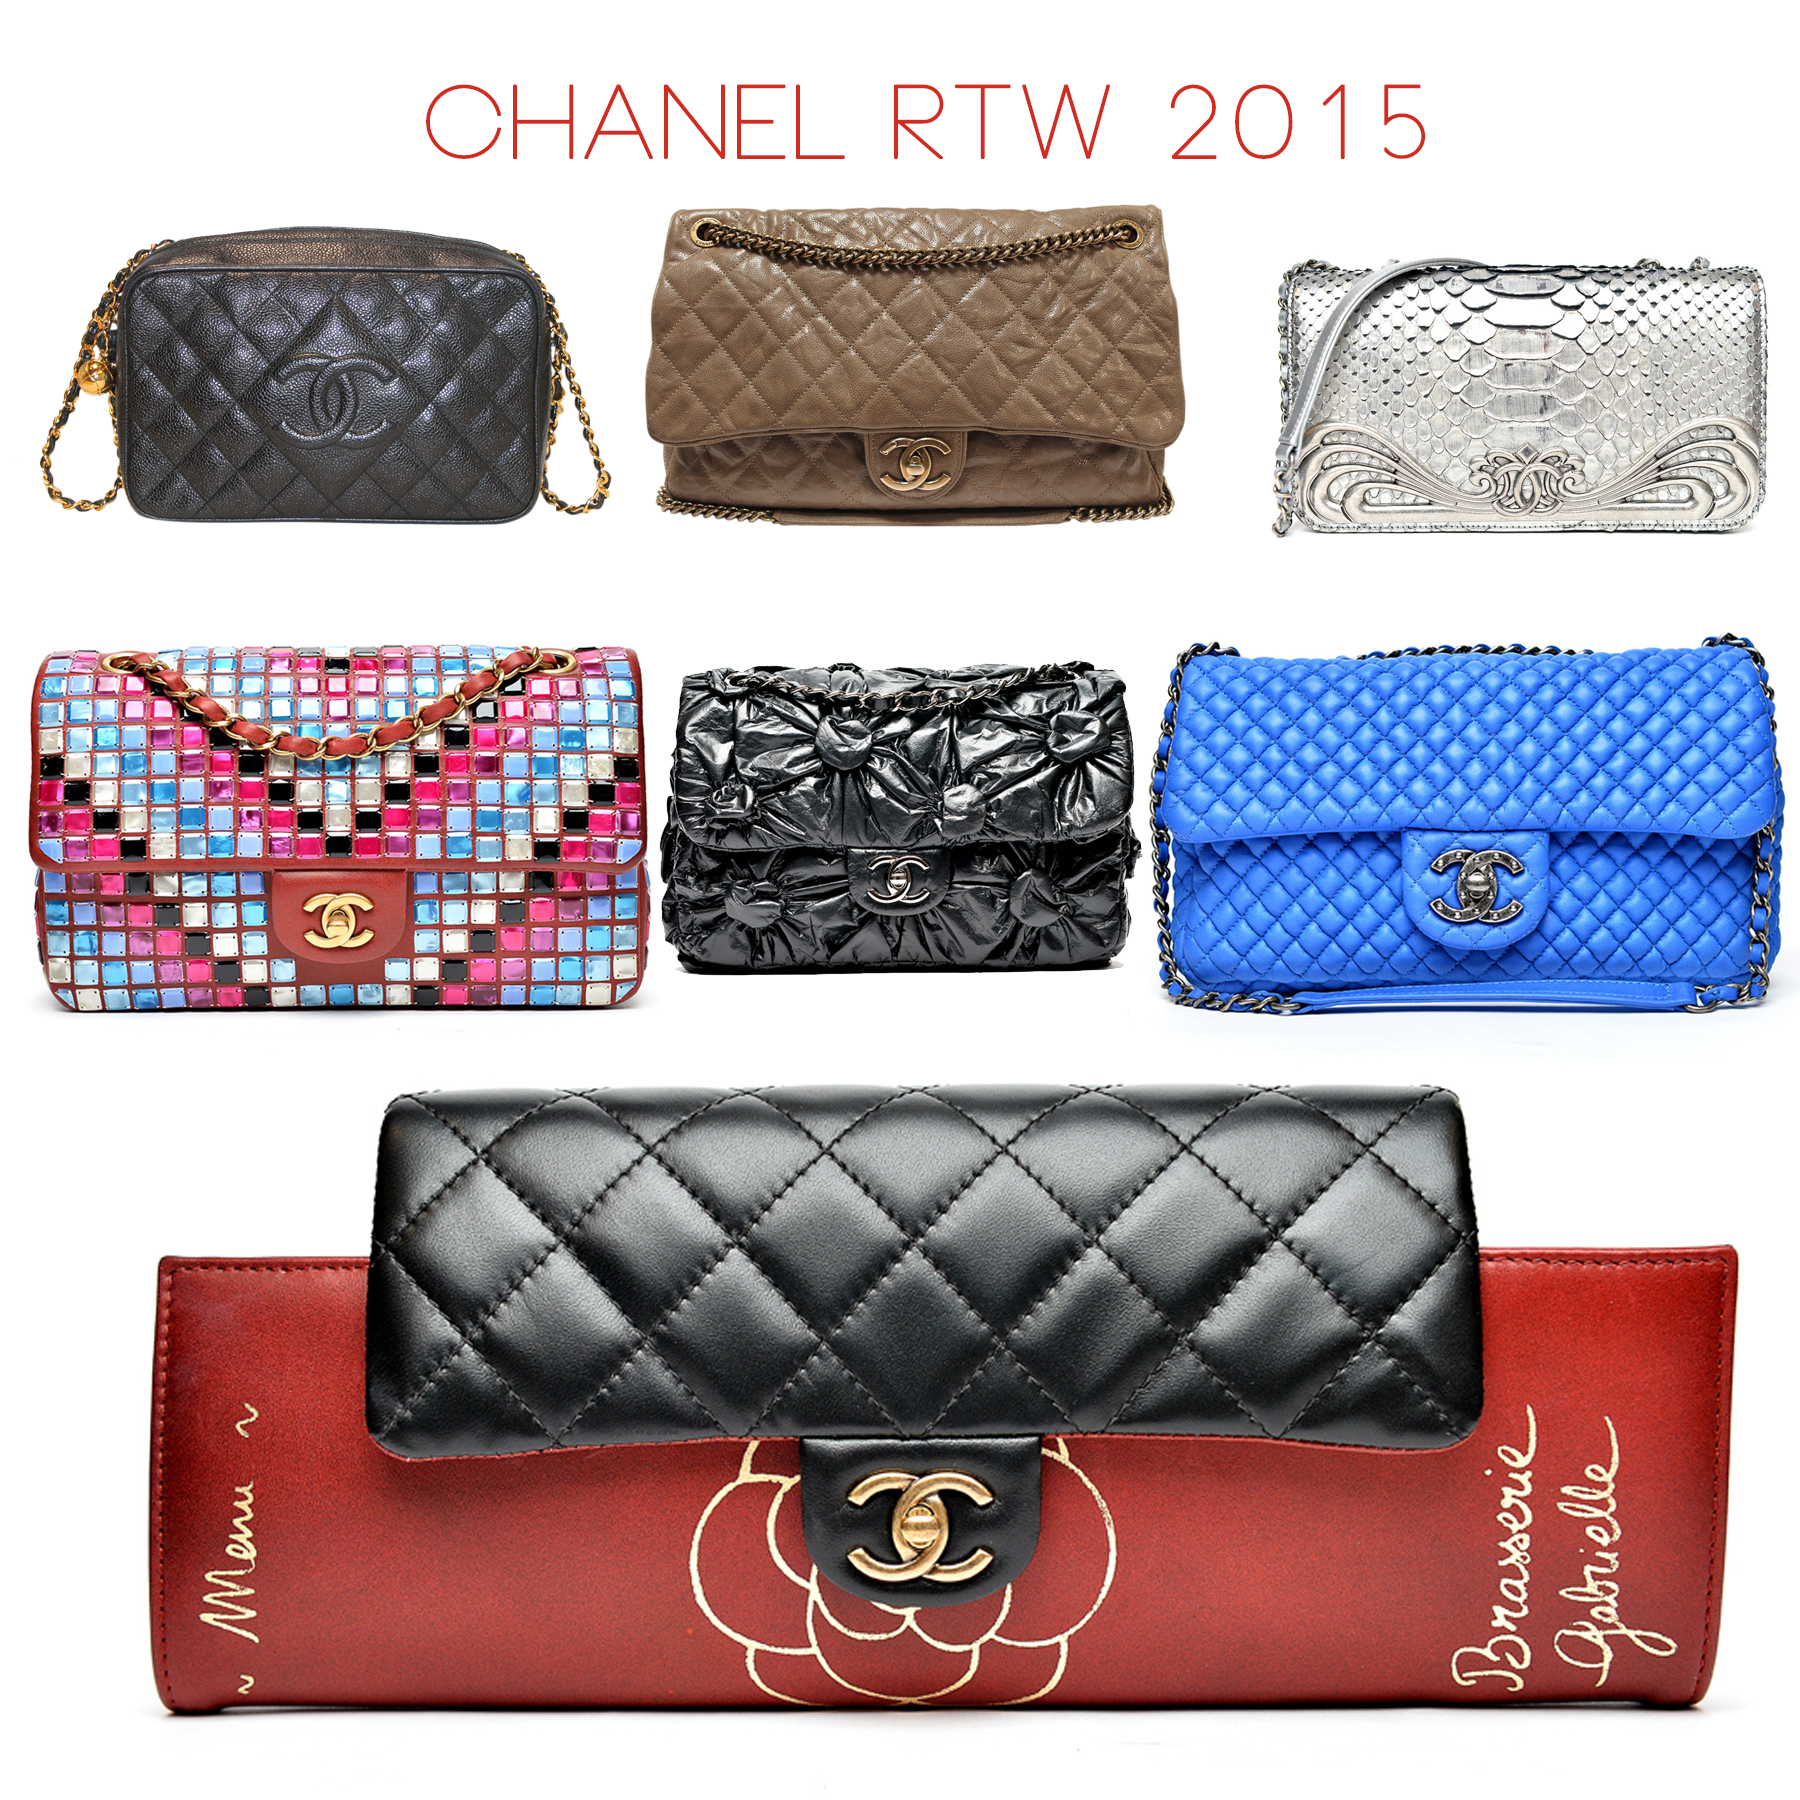 Sky Blue Color Of The Season In Additional Chanel Incorporated Blocking Tiles Vinyl Floweretallic Silver Python On Their Flap Bags